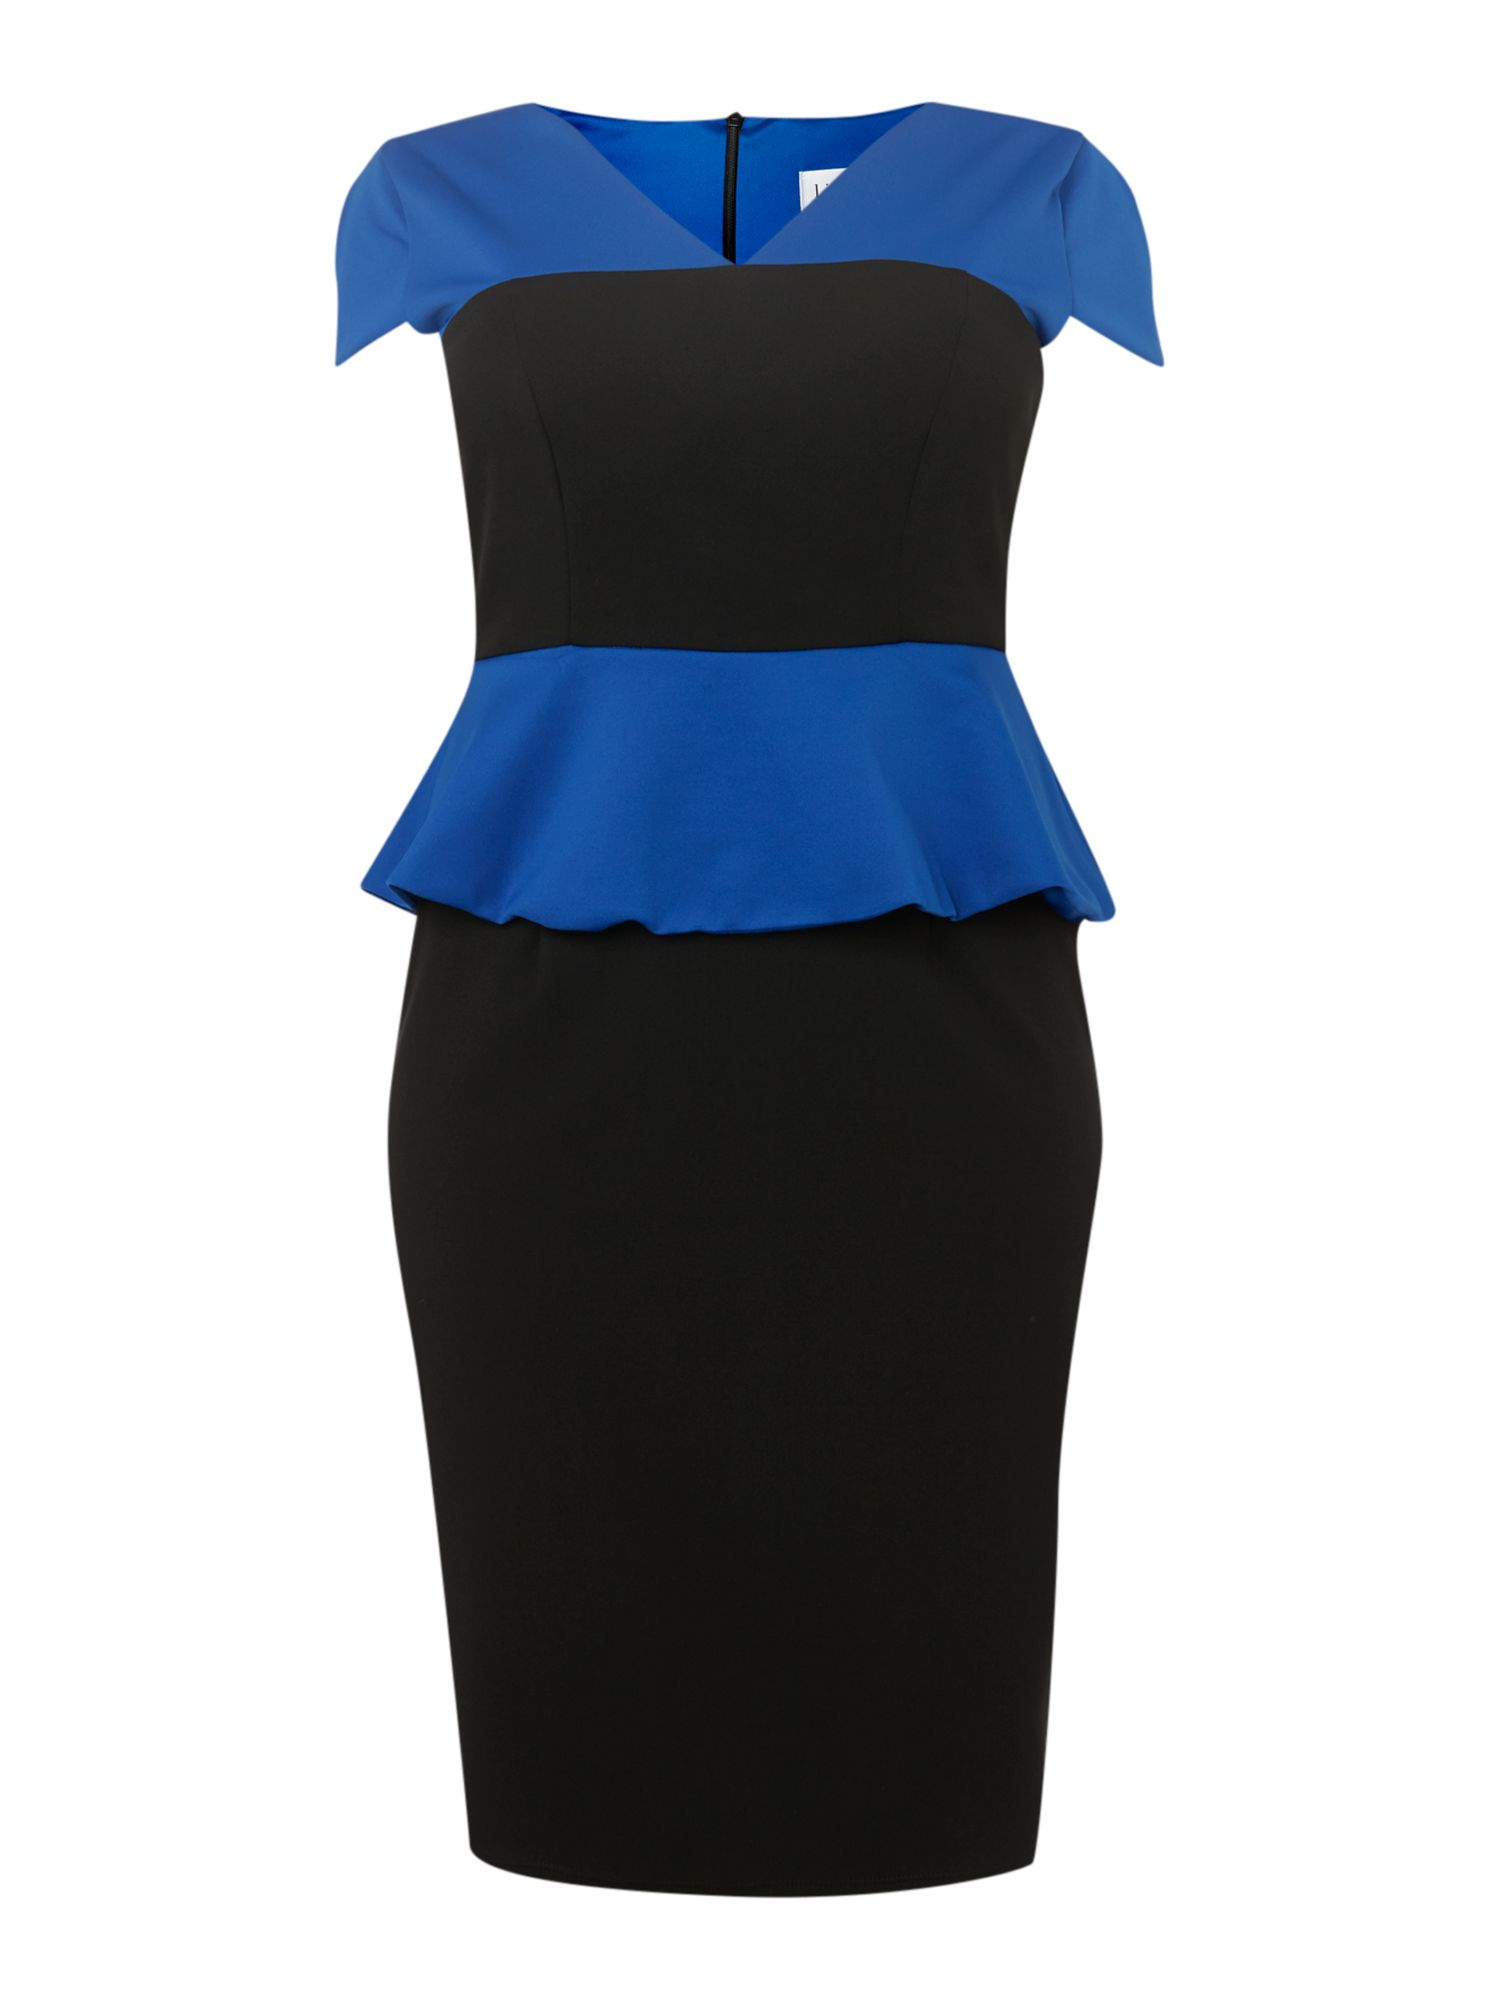 Cap sleeved peplum detail dress